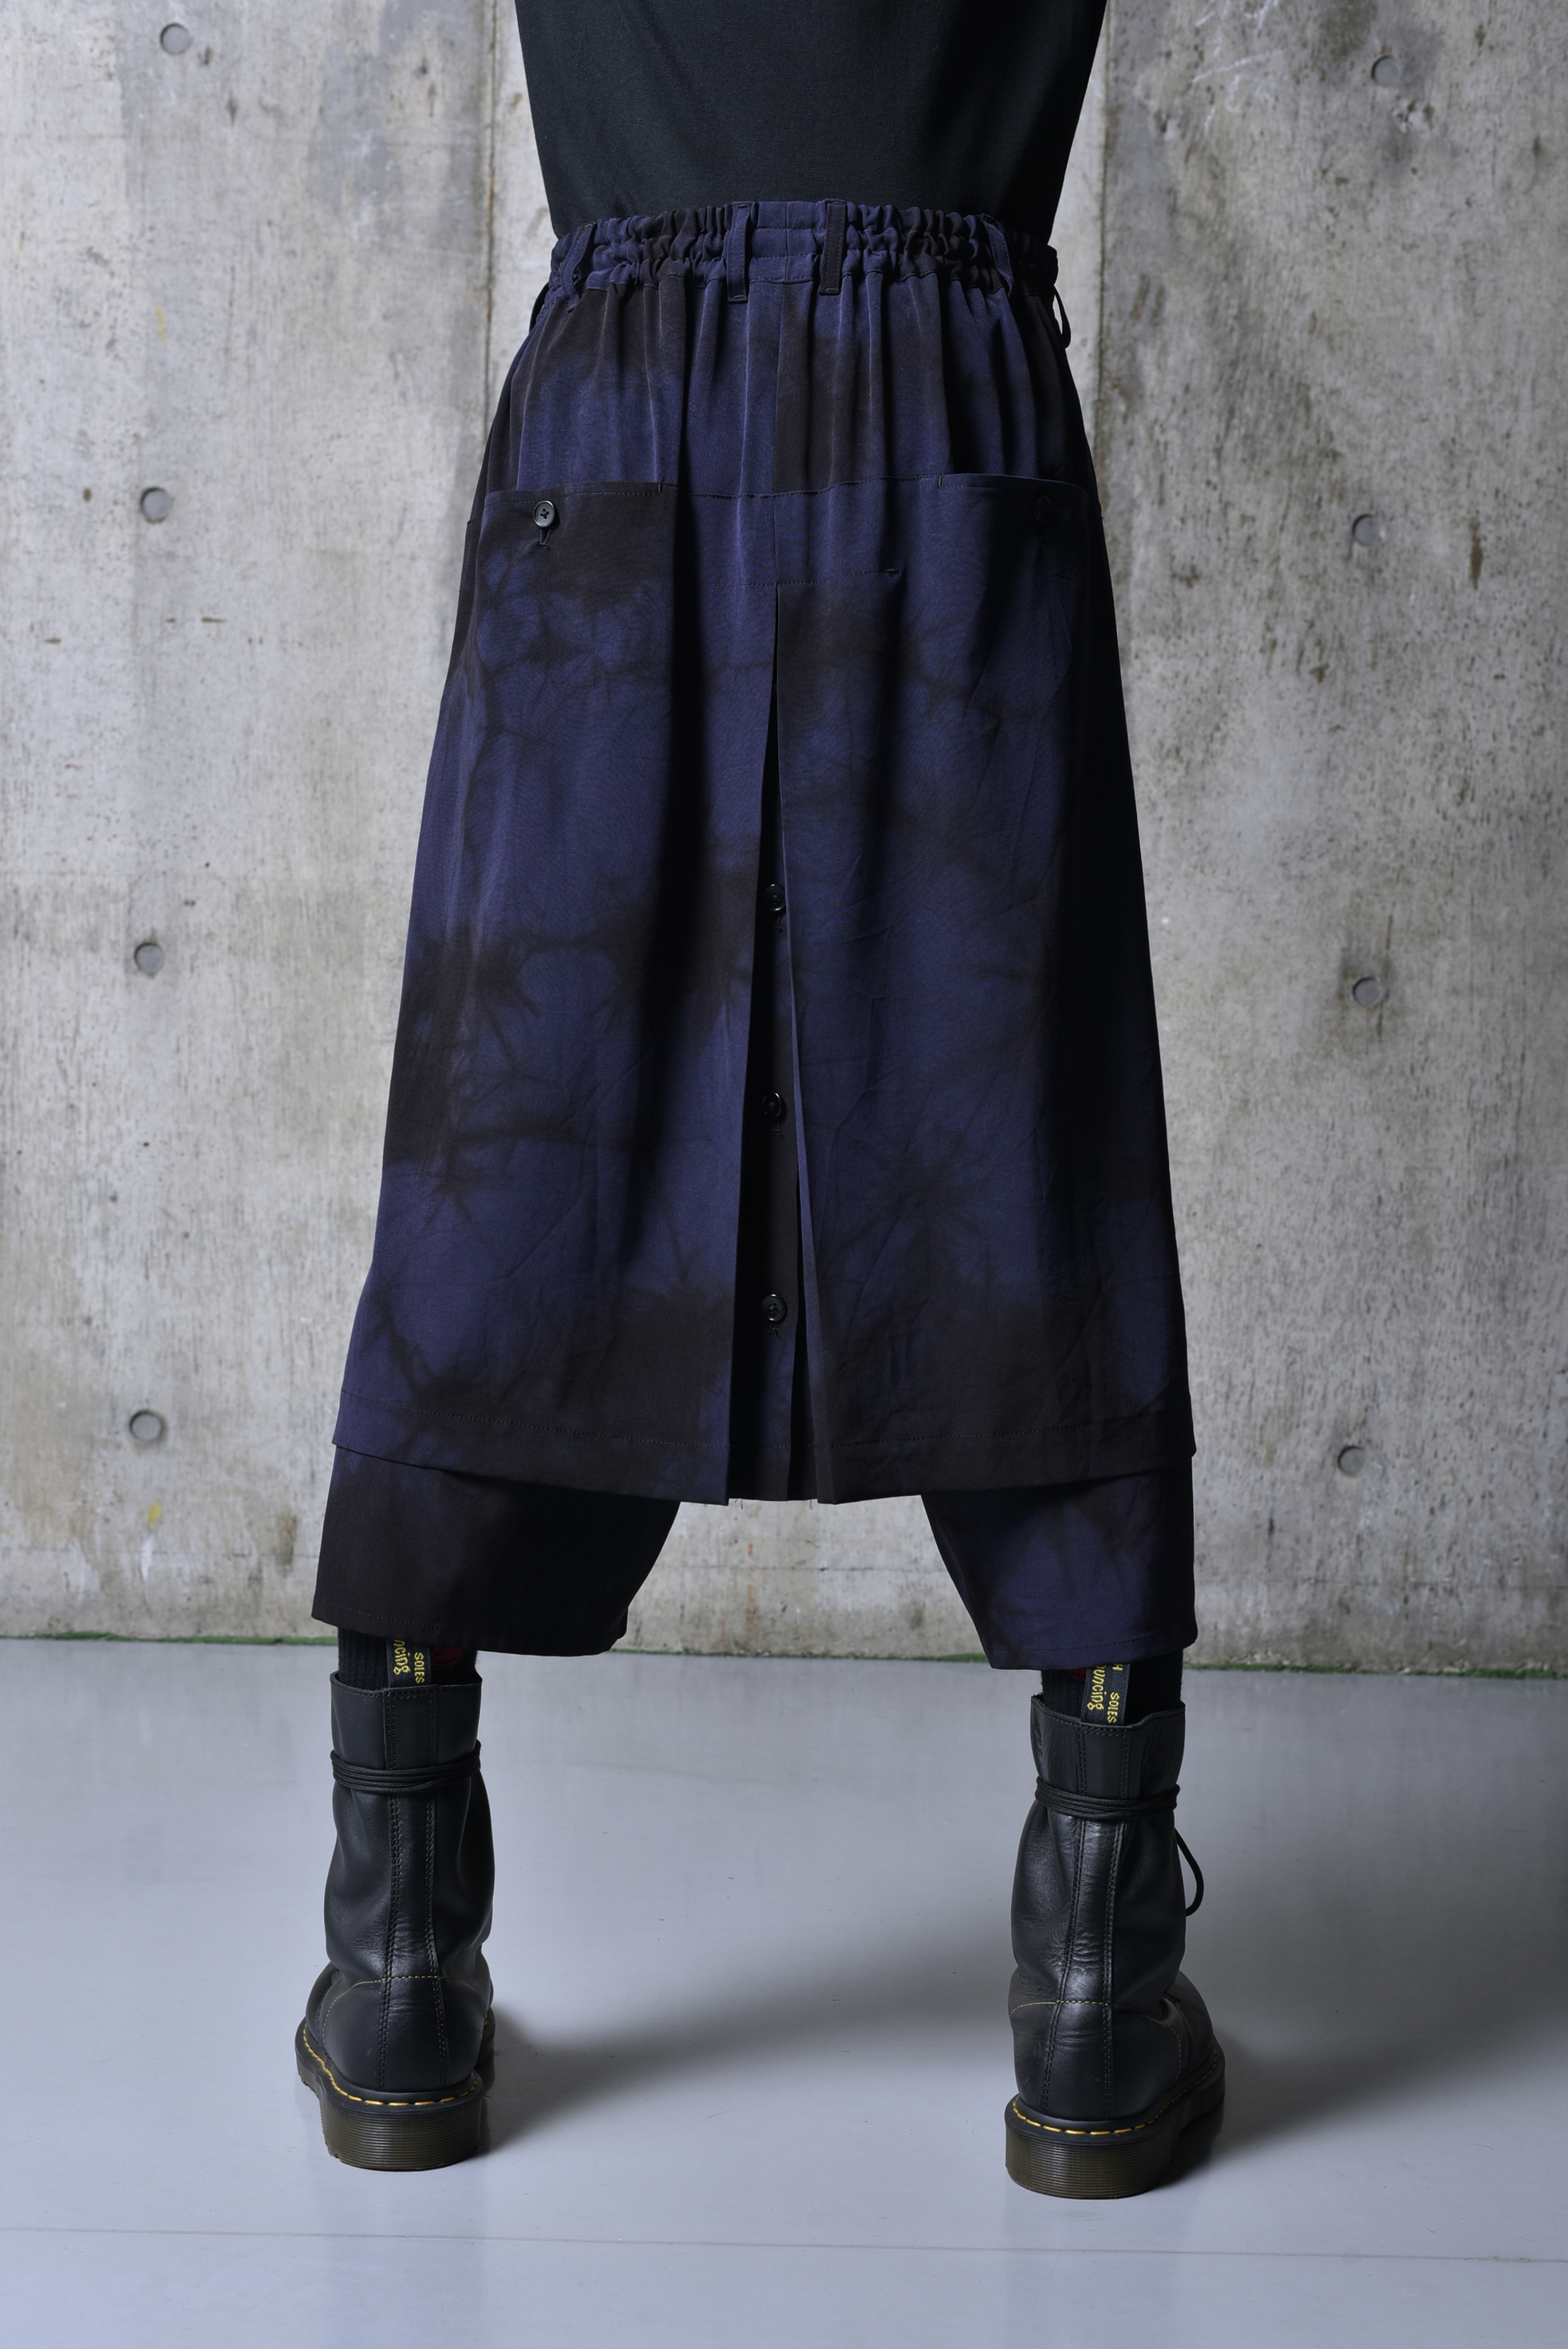 T/A Vintage Decyne Uneven Dyeing Wrap Skirt Pants Type1